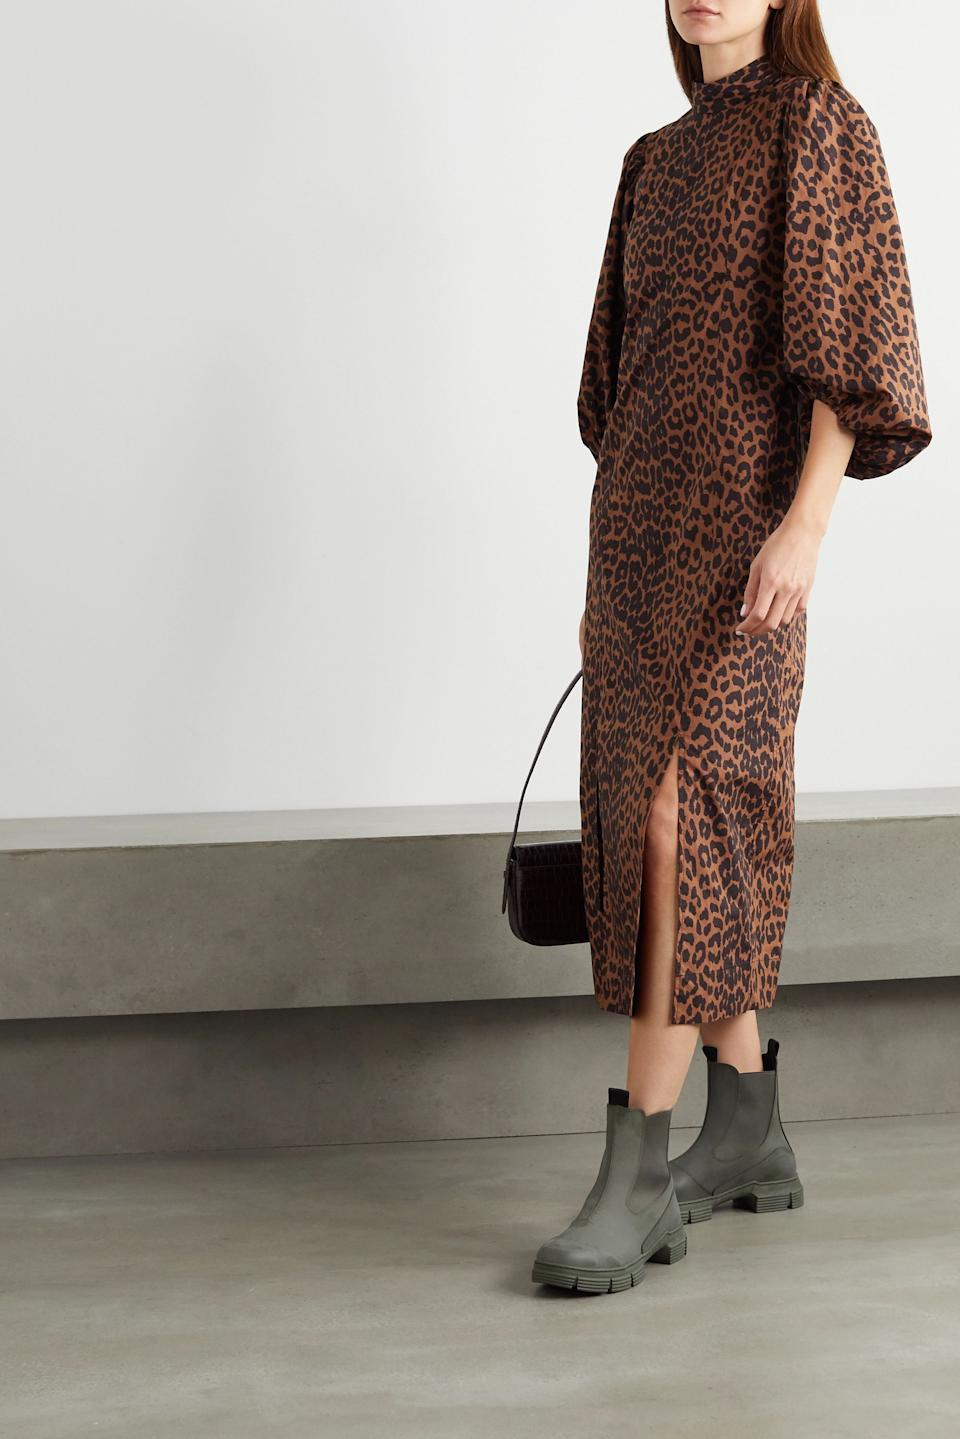 "<br><br><strong>Ganni</strong> Leopard-print Organic Midi Dress, $, available at <a href=""https://go.skimresources.com/?id=30283X879131&url=https%3A%2F%2Fwww.net-a-porter.com%2Fen-us%2Fshop%2Fproduct%2Fganni%2Fnet-sustain-leopard-print-organic-cotton-poplin-midi-dress%2F1248683%3F"" rel=""nofollow noopener"" target=""_blank"" data-ylk=""slk:Net-A-Porter"" class=""link rapid-noclick-resp"">Net-A-Porter</a>"